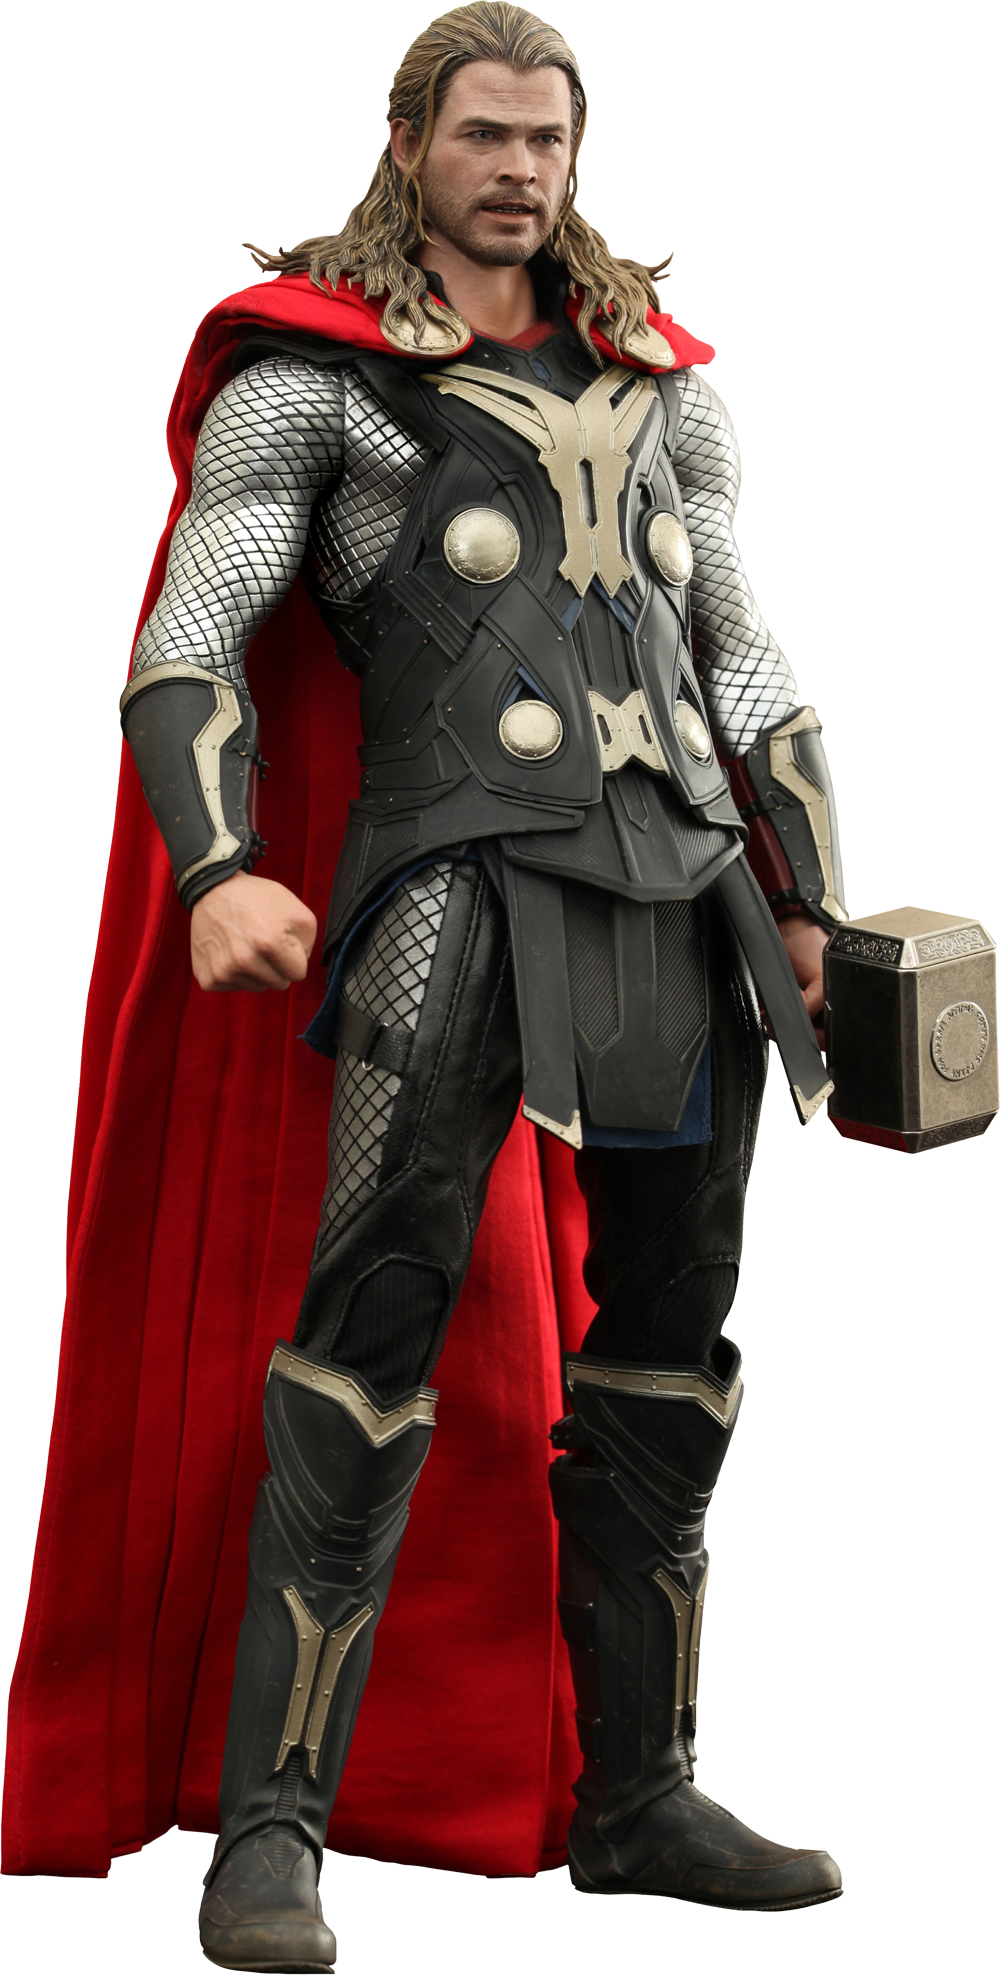 Thor the dark world png. Image hotmms hot toys